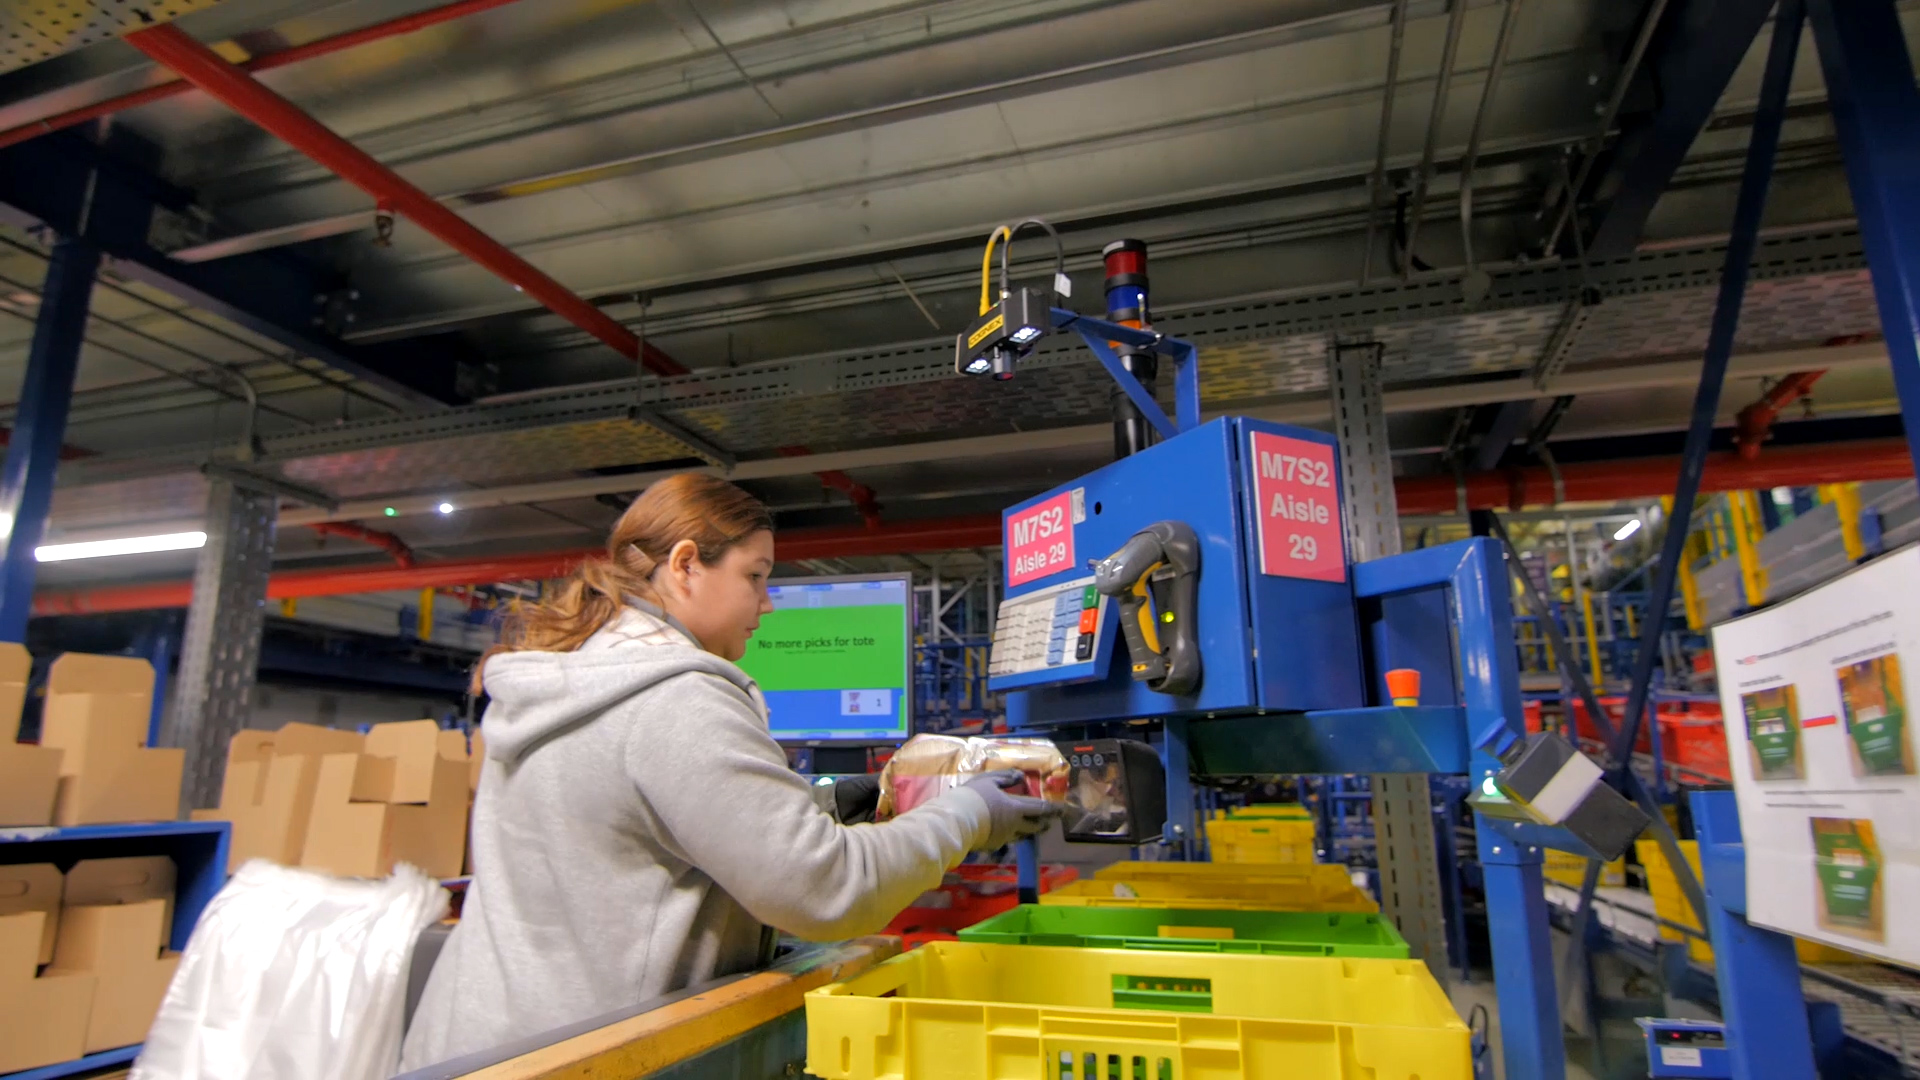 The Robotic Grocery Store of the Future Is Here